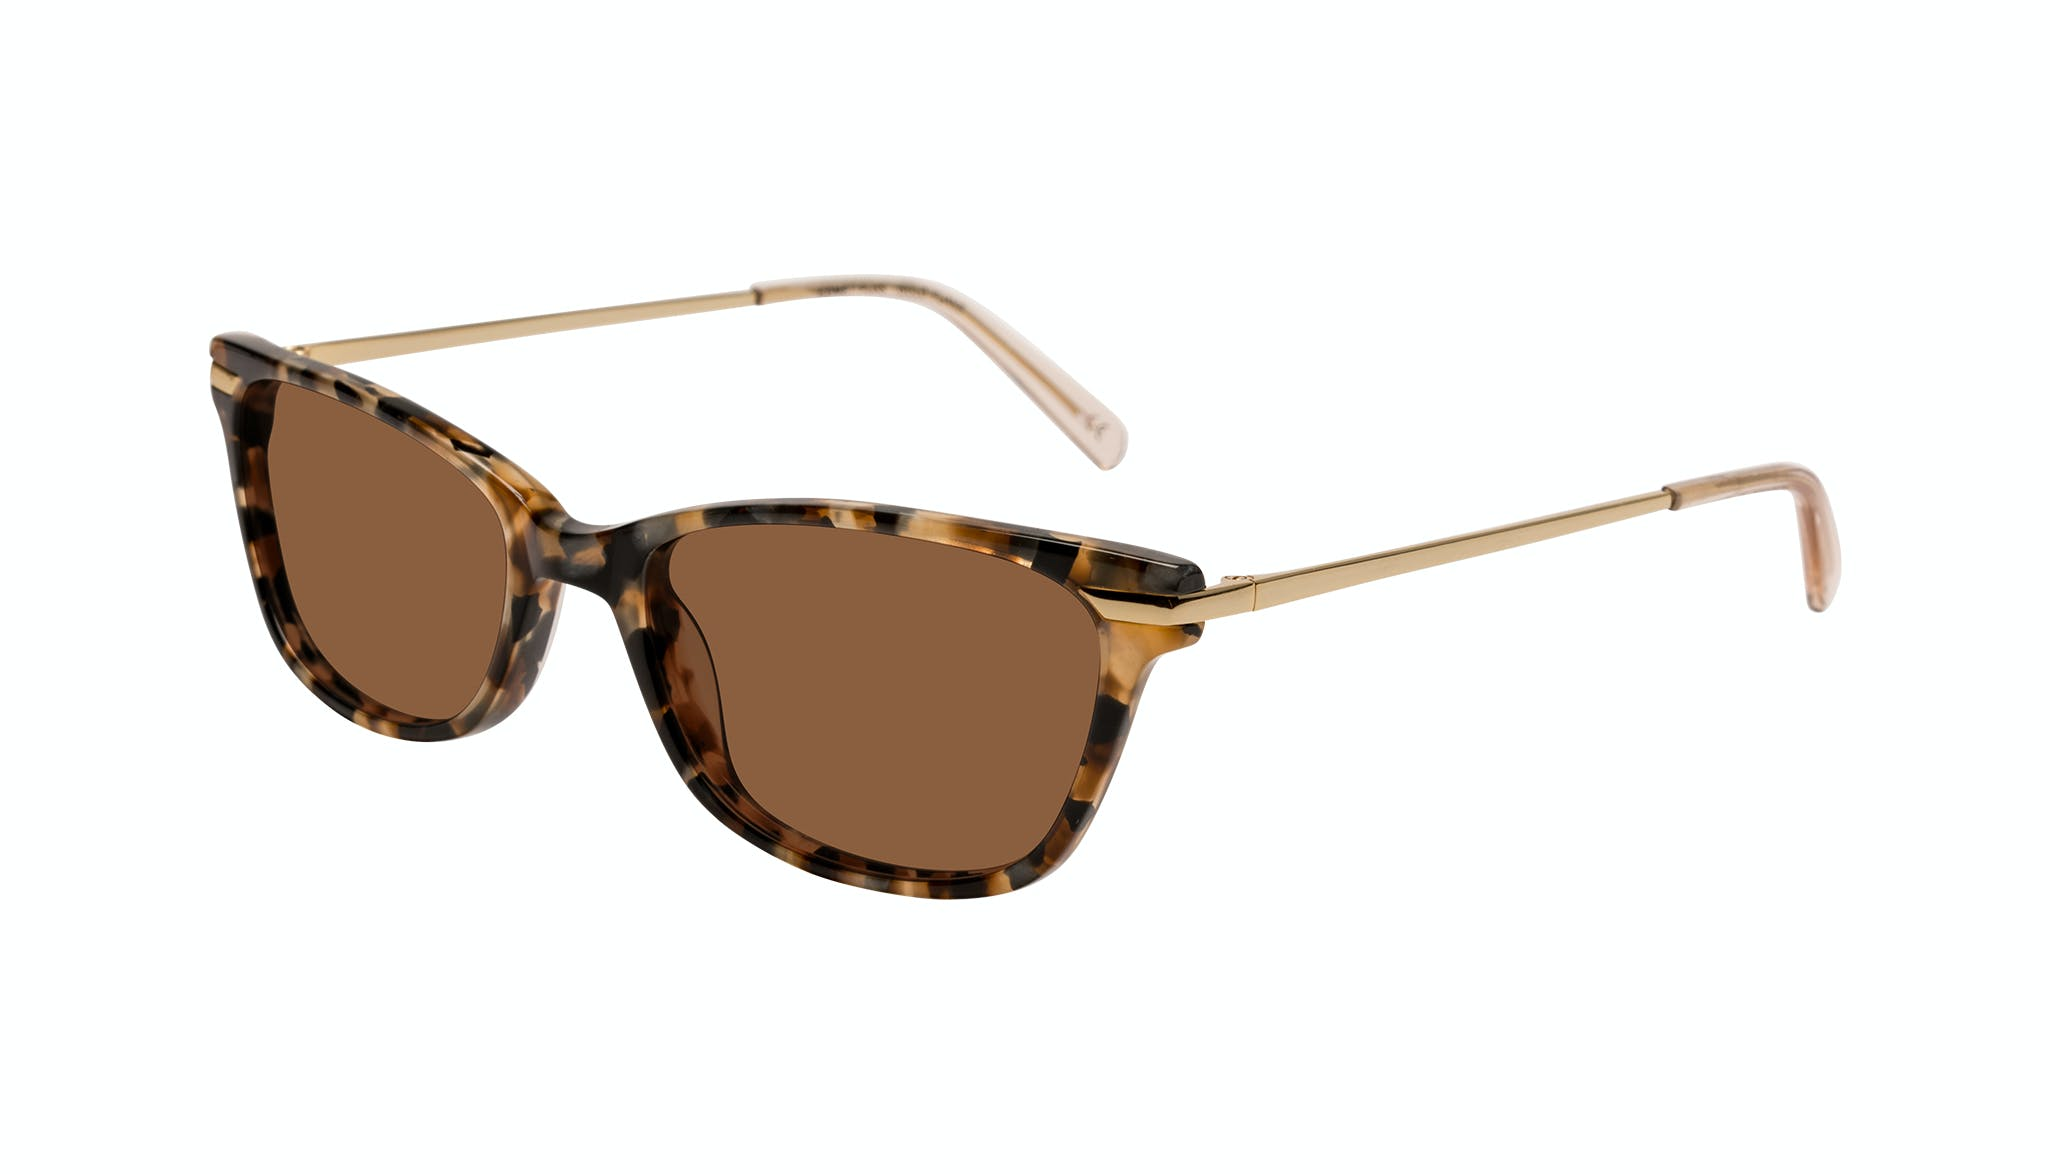 Affordable Fashion Glasses Rectangle Sunglasses Women Comet Plus Gold Flake Tilt